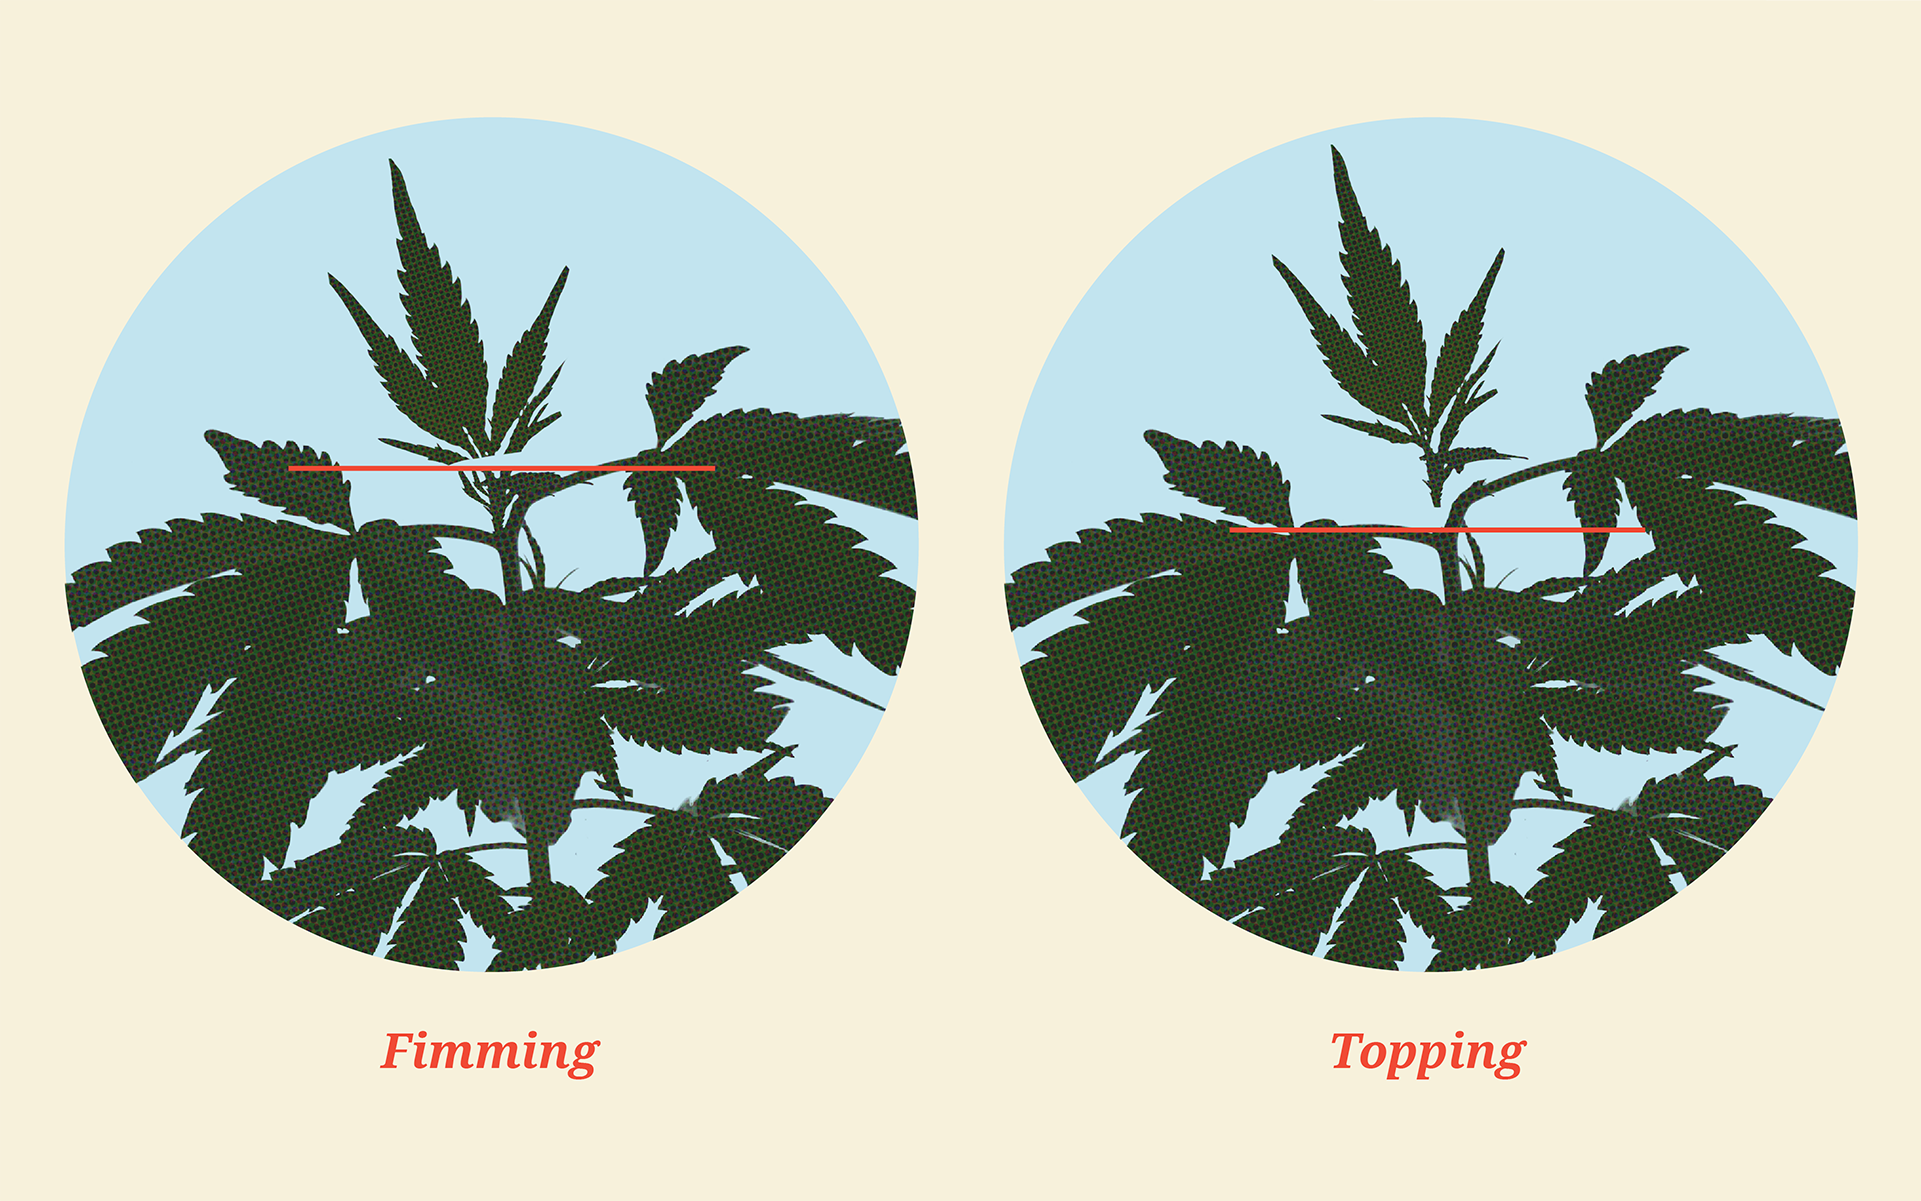 When to top outdoor plants